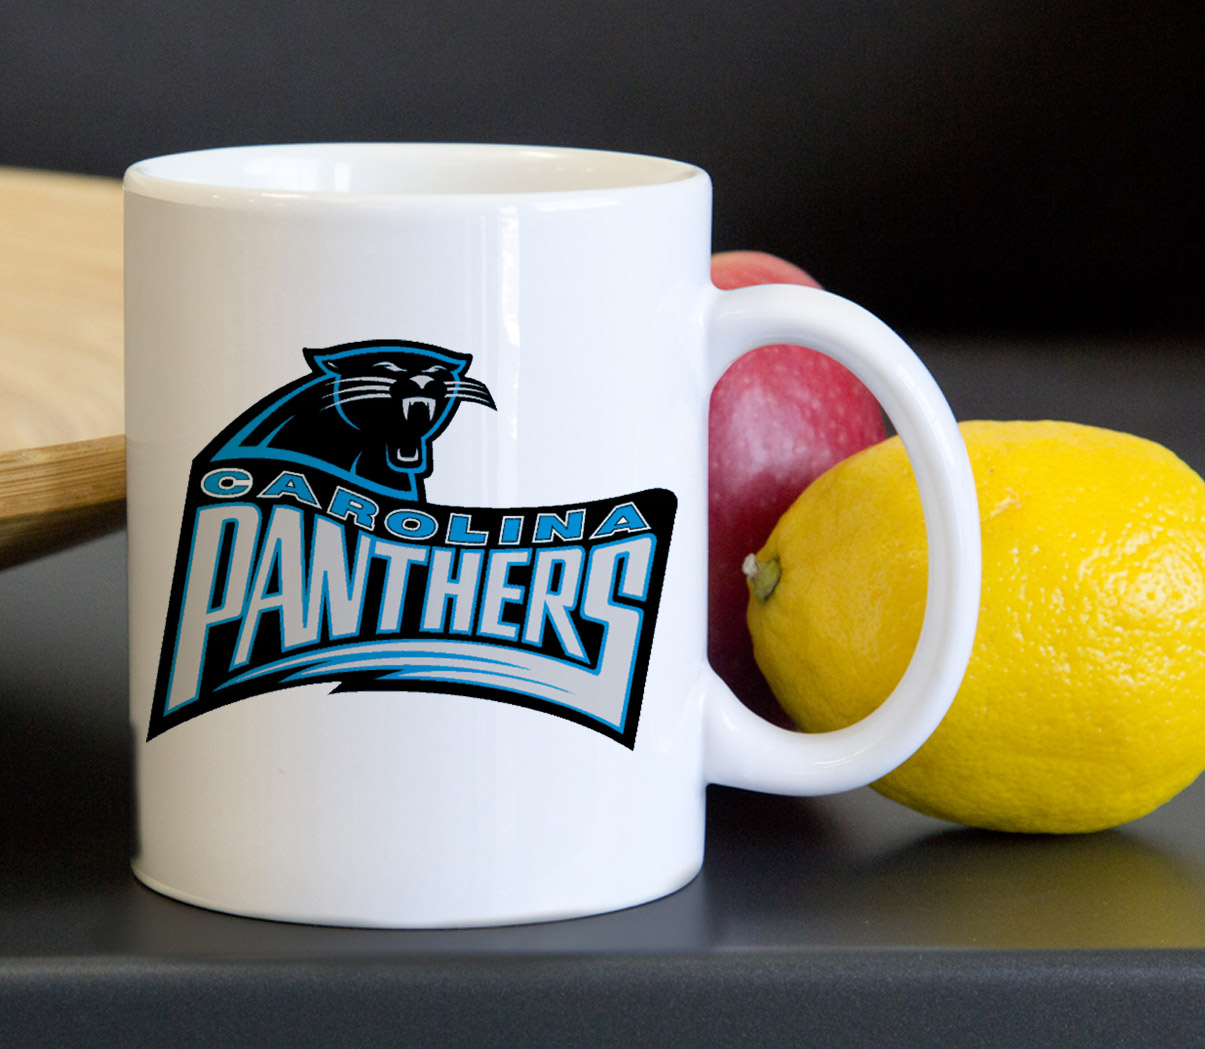 Carolina Panthers NFL Team Tea Coffee Mug 11oz